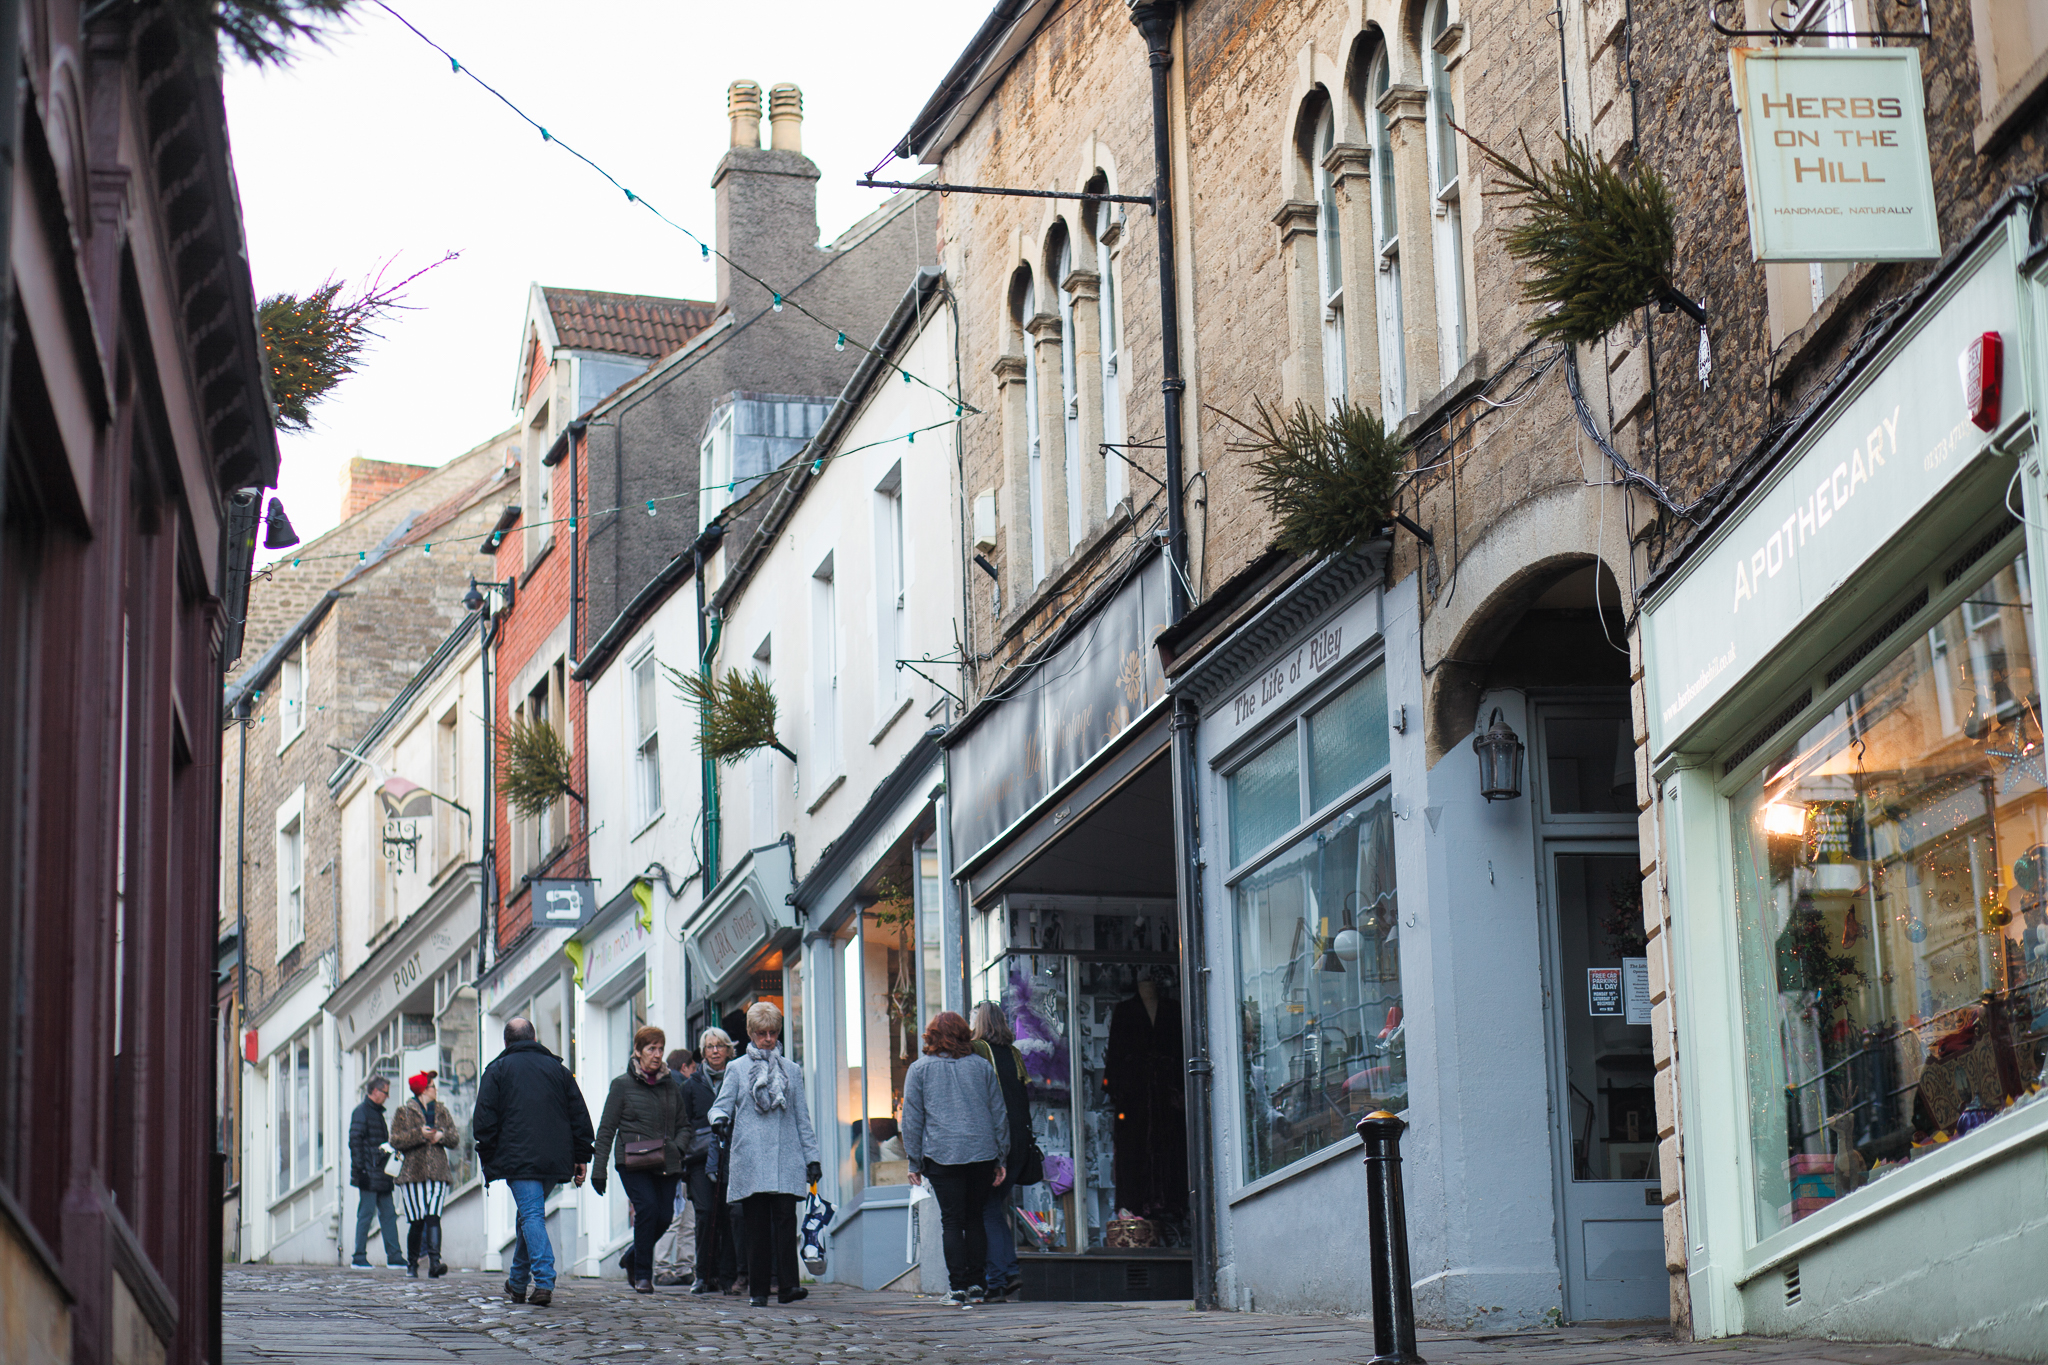 Catherine Hill is a great place for a walk, with beautiful cobbled streets and a diverse range of shops.